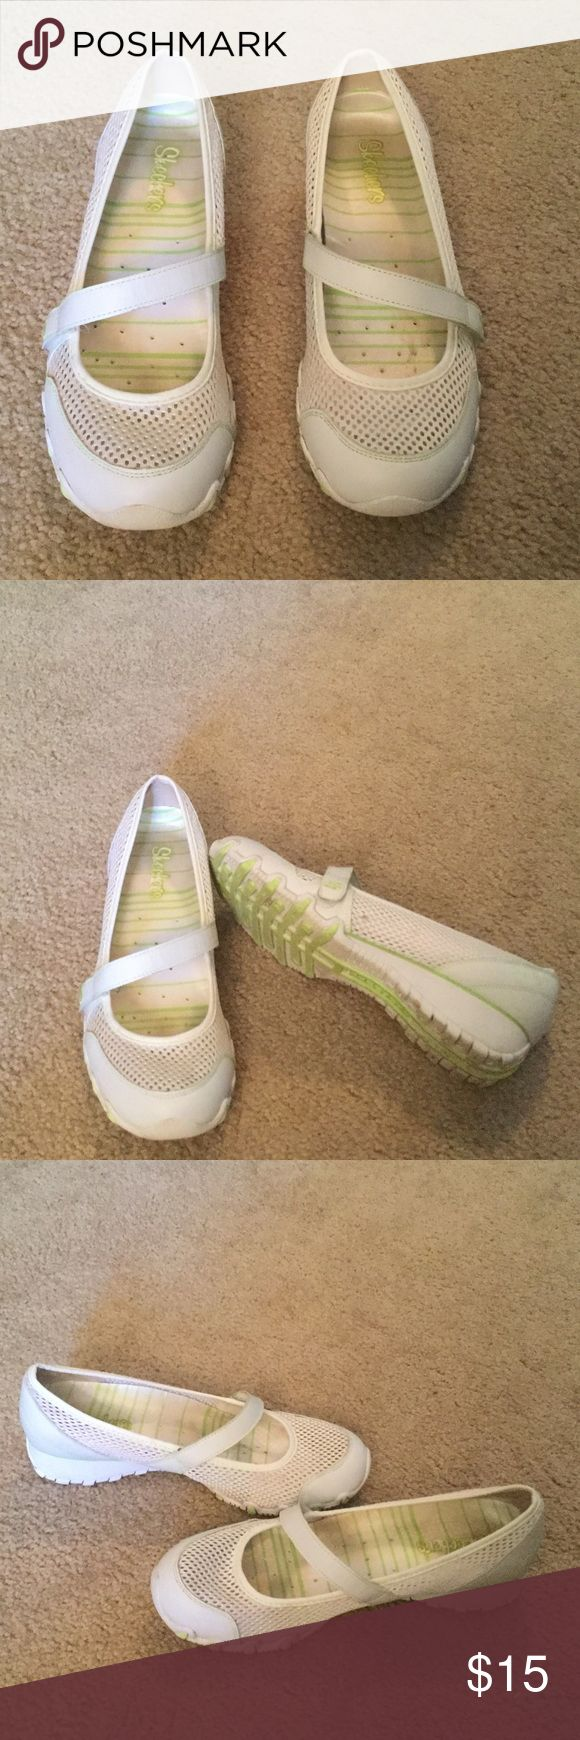 Skechers Shoes very good condition, slight wear on soles, looks a little dirty because of them being white.  Cushioned insoles. Size is not showing, but they are size 8. Skechers Shoes Flats & Loafers